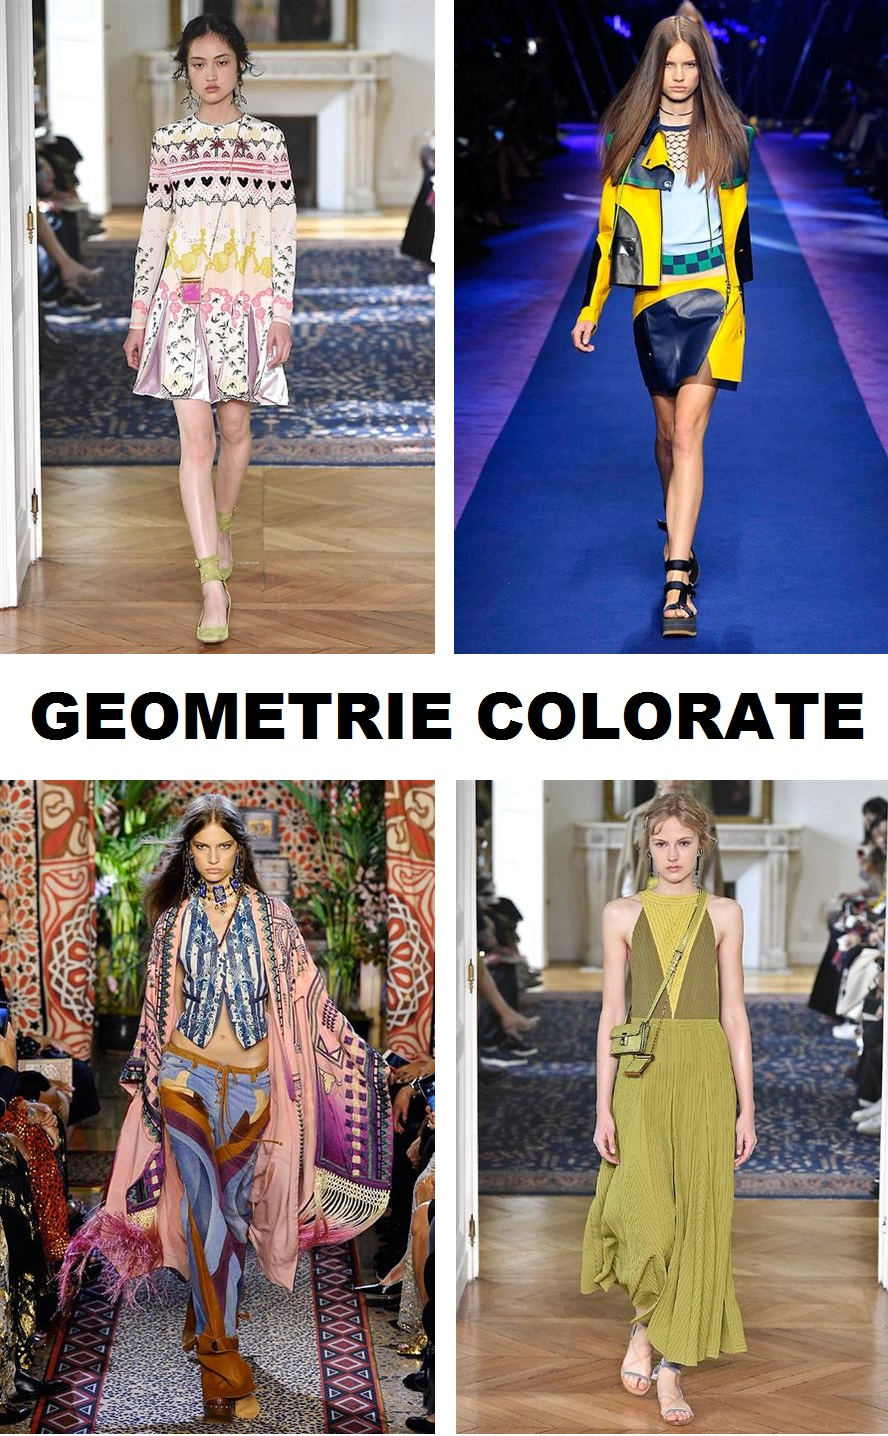 geometrie colorate fashion COLLAGE